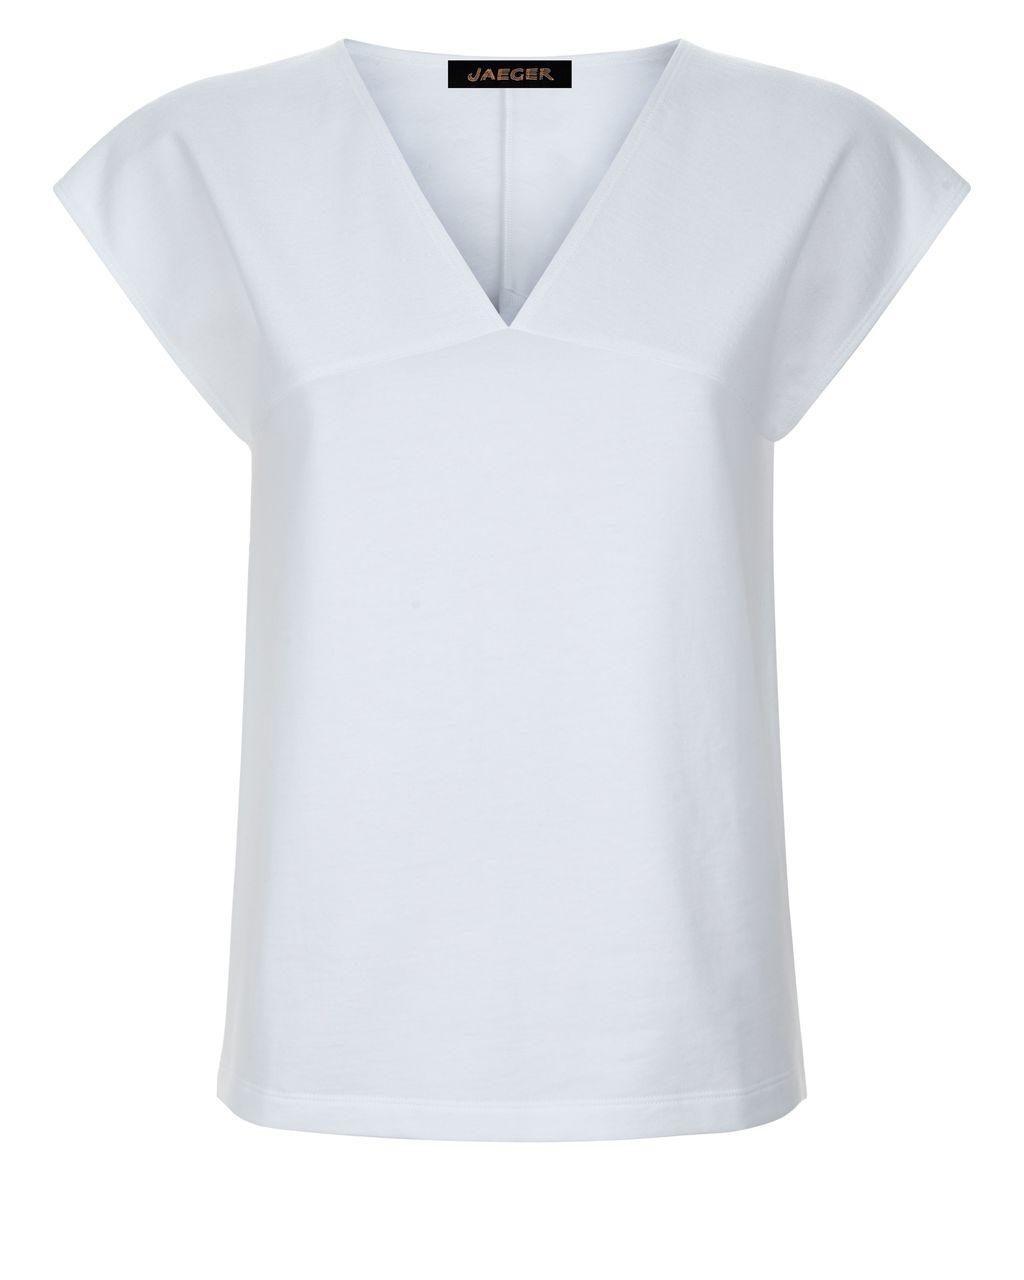 Jersey Textured Block T Shirt, White - neckline: v-neck; sleeve style: capped; pattern: plain; style: t-shirt; predominant colour: white; occasions: casual; length: standard; fibres: cotton - 100%; fit: straight cut; sleeve length: short sleeve; pattern type: fabric; texture group: jersey - stretchy/drapey; season: s/s 2016; wardrobe: basic